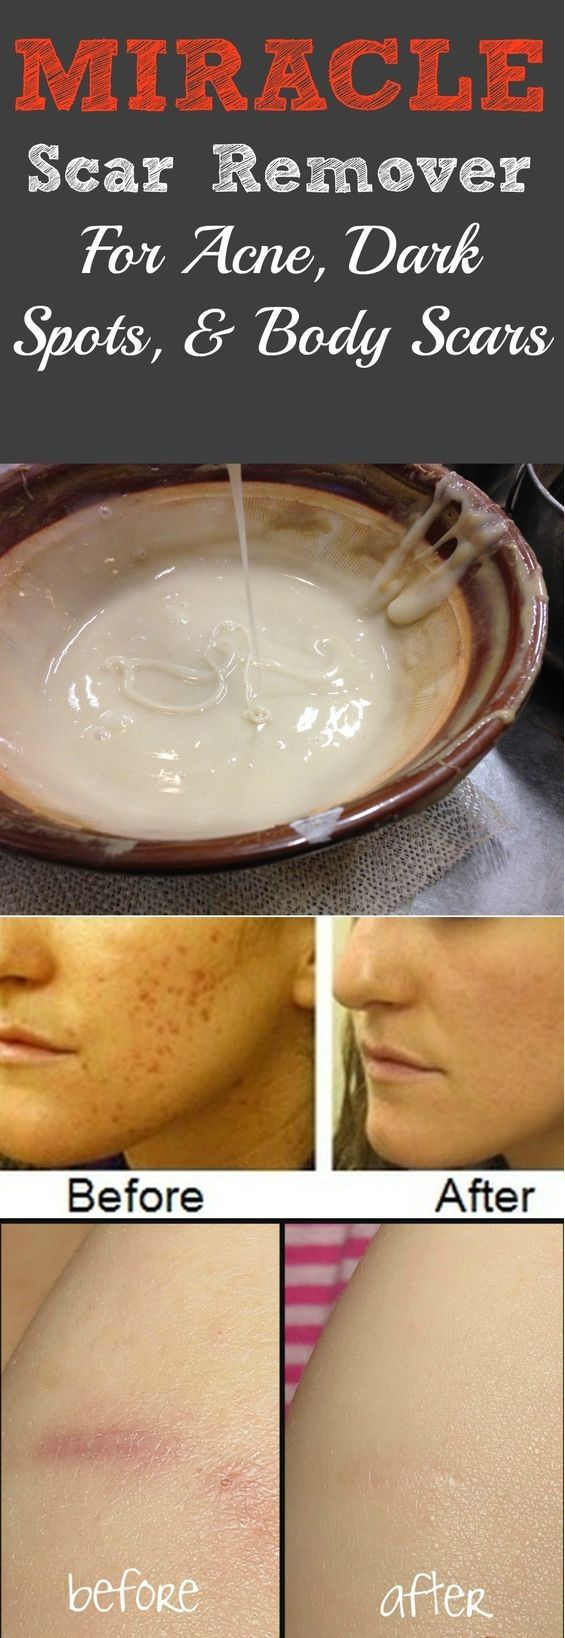 Wao Miracle Oil | Scar Remover For Acne, Dark Spots. And Body Scars | 3 Day Challenge - This miracle oil can remove all the spots and scars on your skin